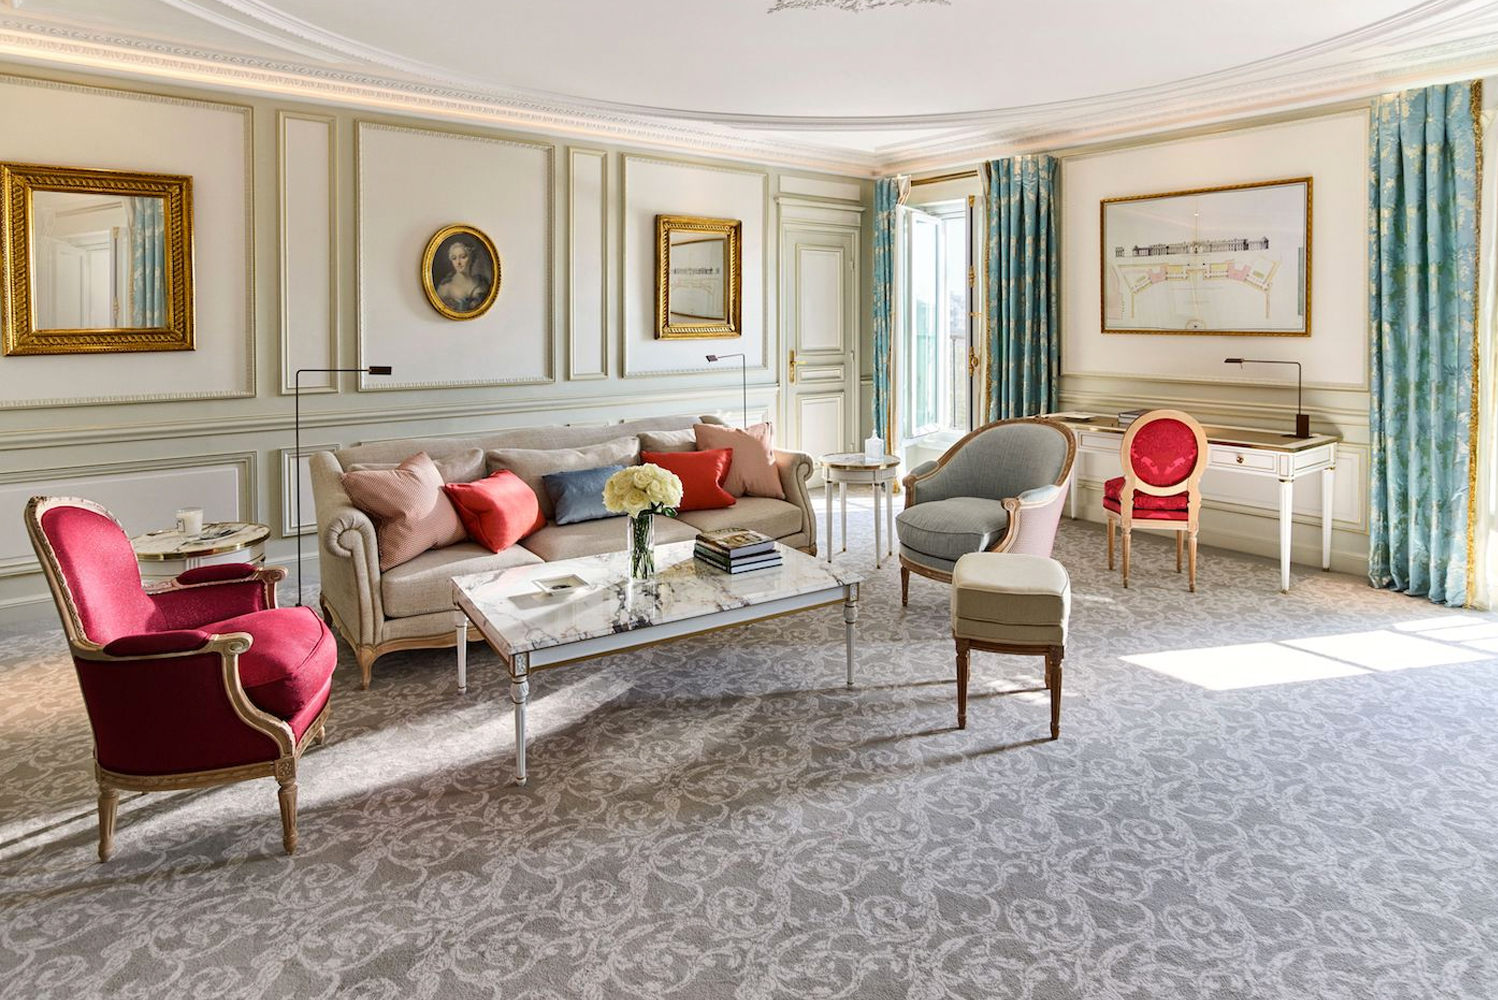 Dorchester Collection's Le Meurice hotel completed the renovation of 29 rooms and suites from the third to sixth floor, as well as a penthouse suite, the Belle Etoile Suite, on the seventh floor.